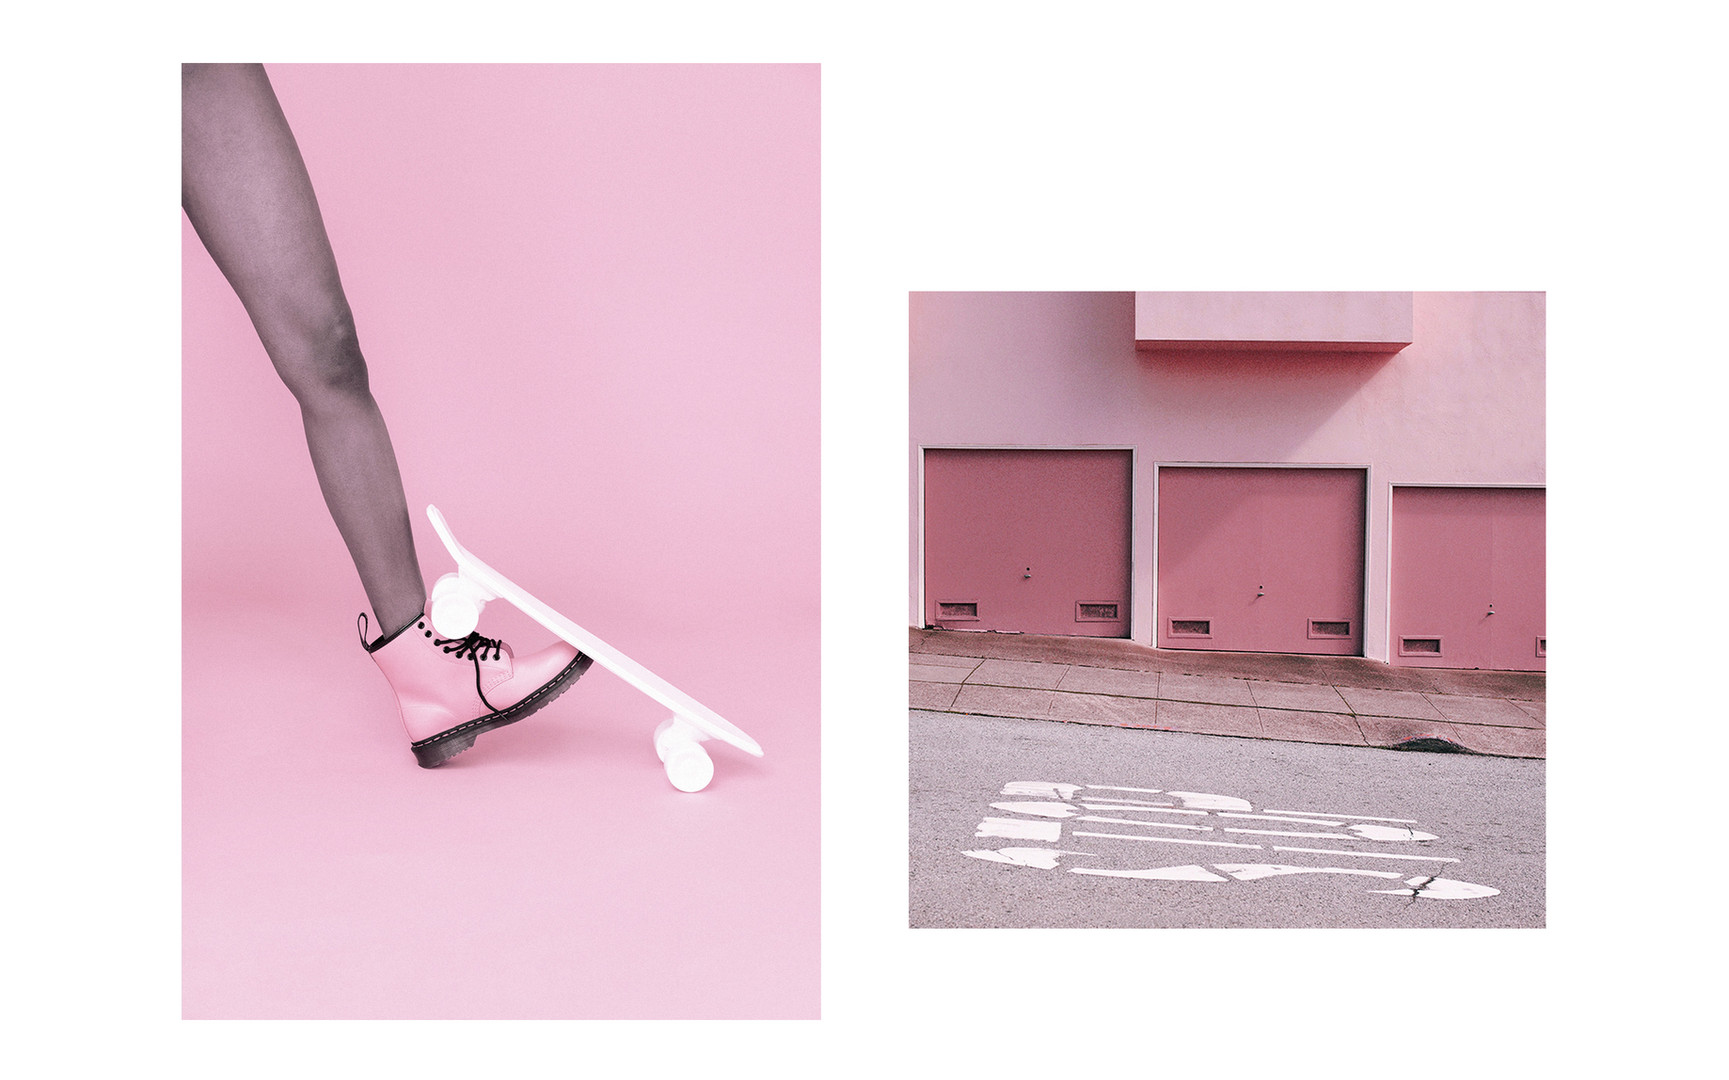 Mix_Up_Diptych03.jpg